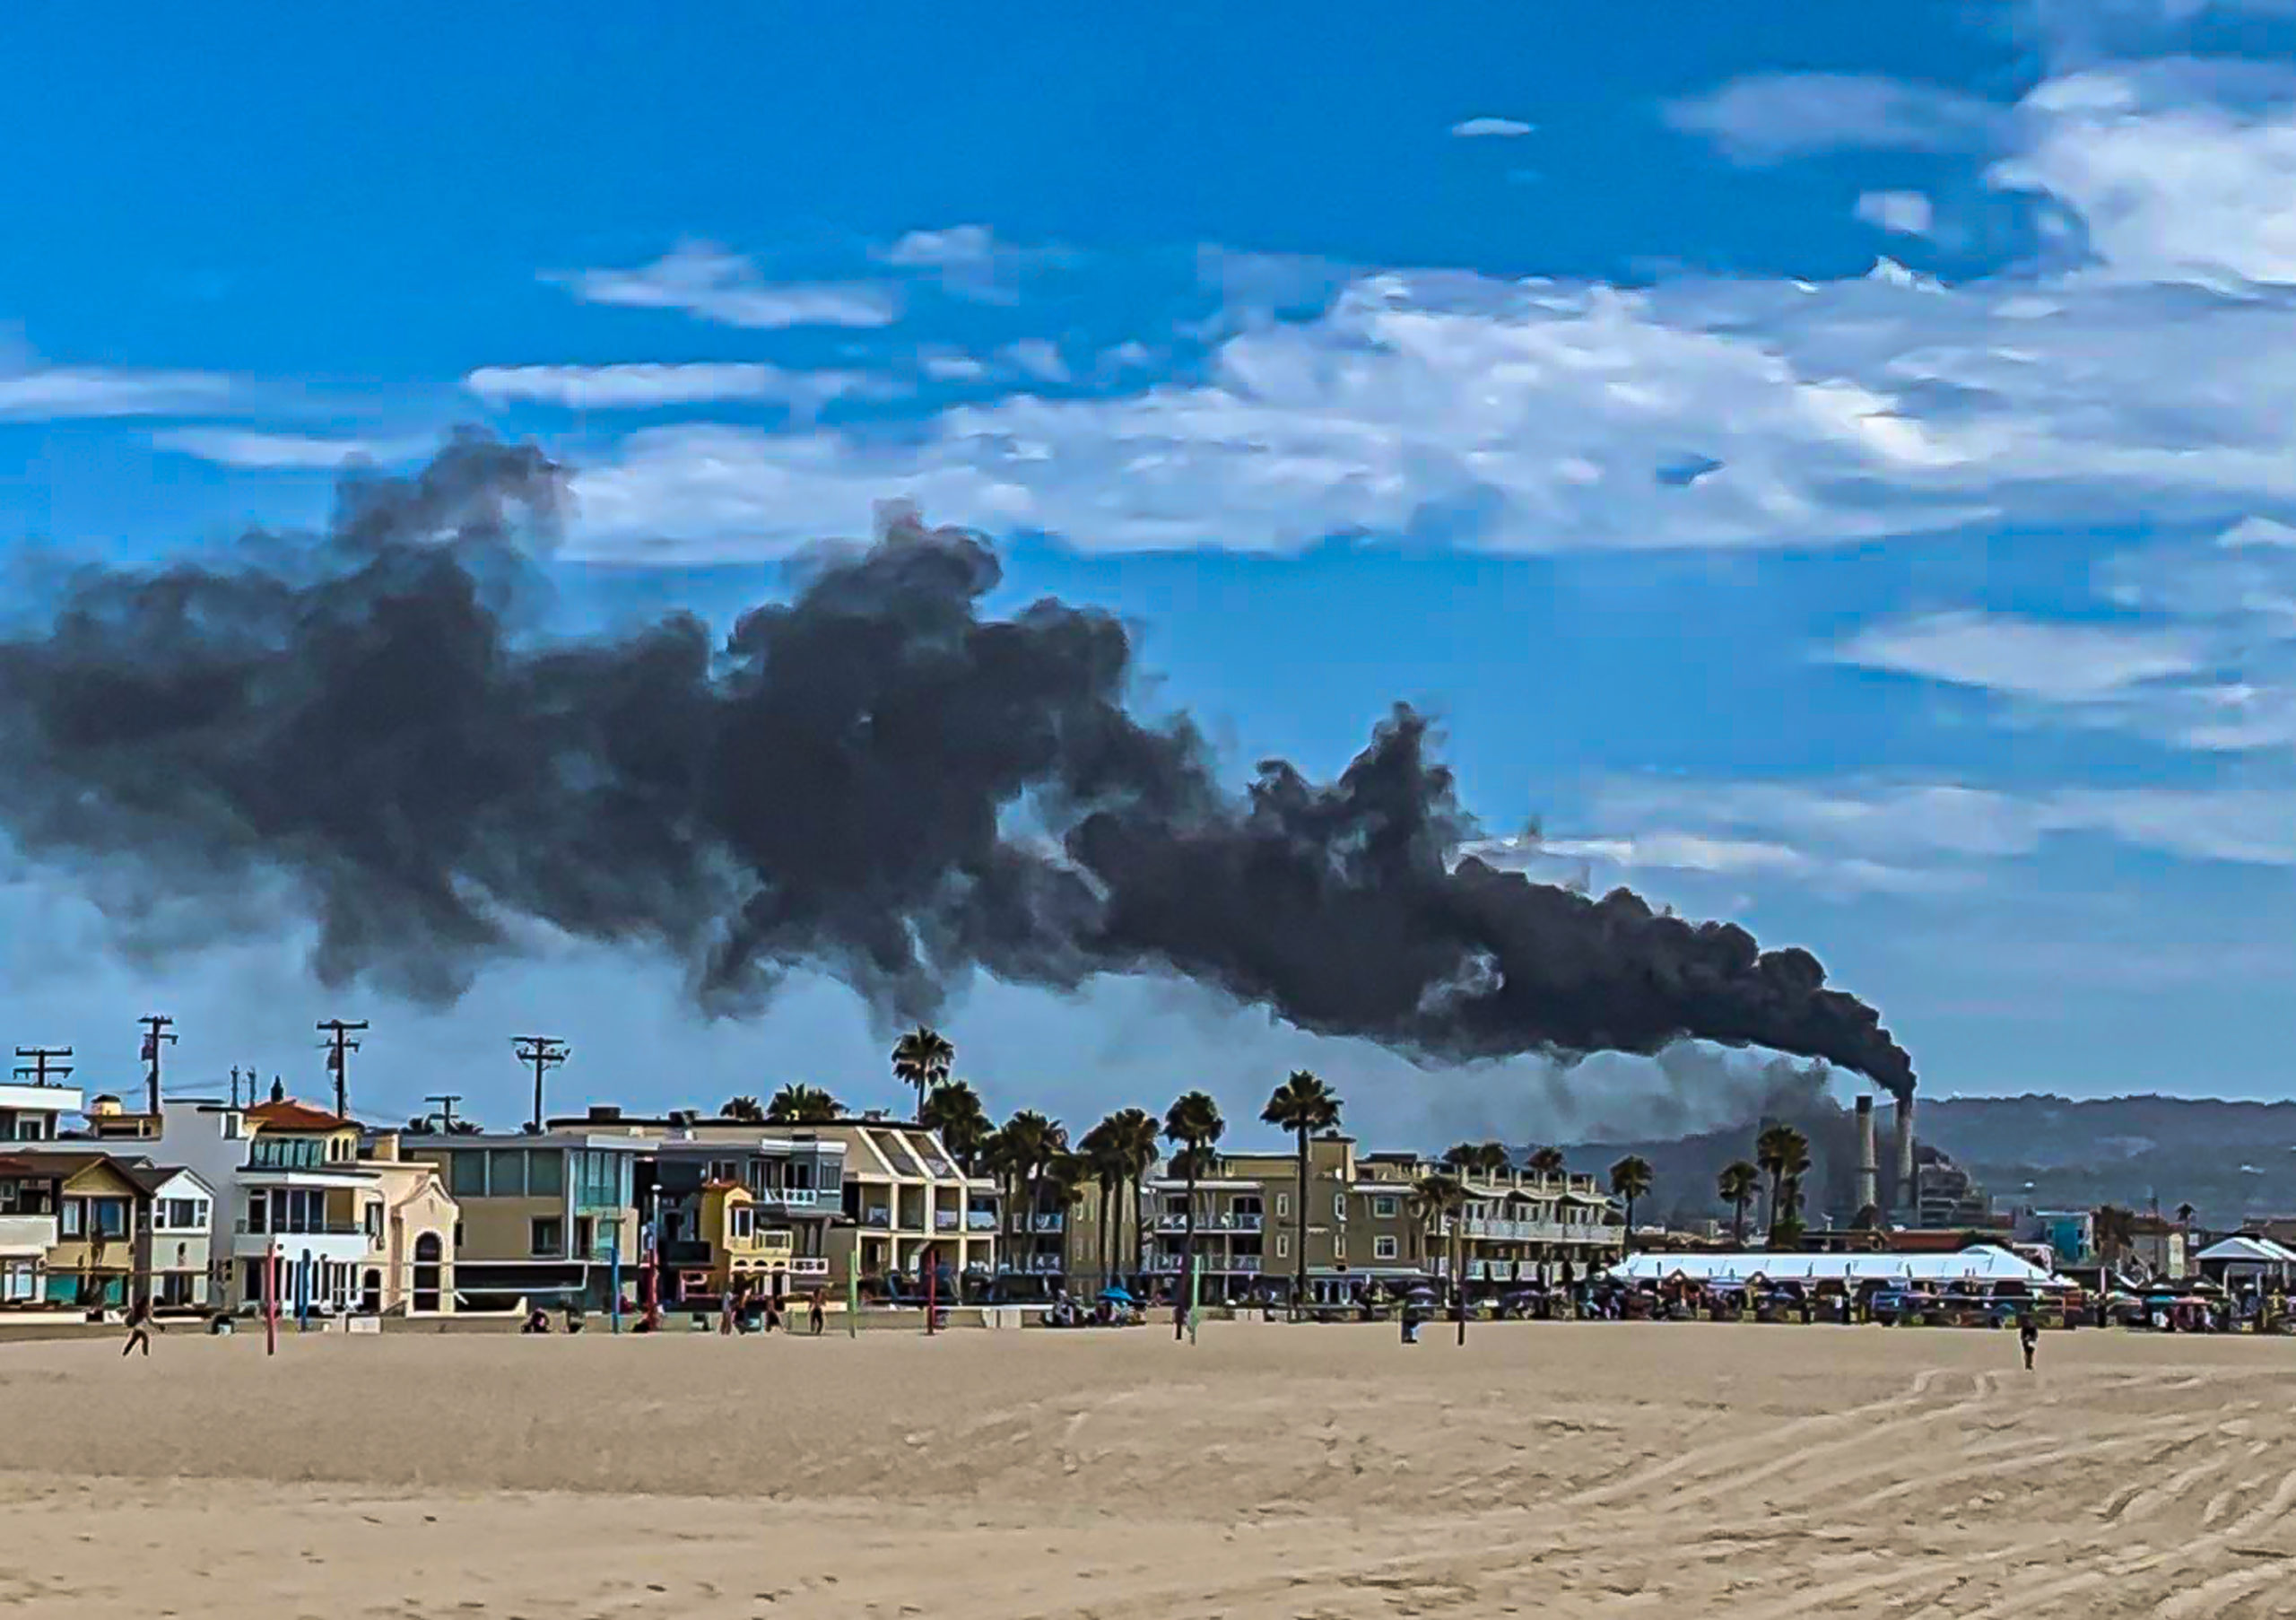 California's Electricity Regulator Feels the Heat from Community Organizations on Use of Fossil Fuel Power Plants